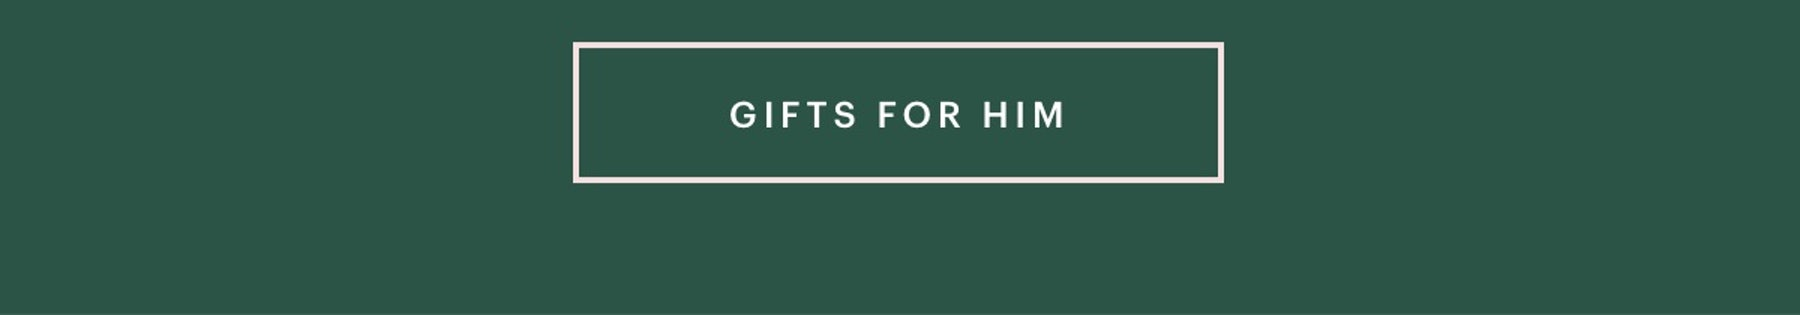 Gifts for him.